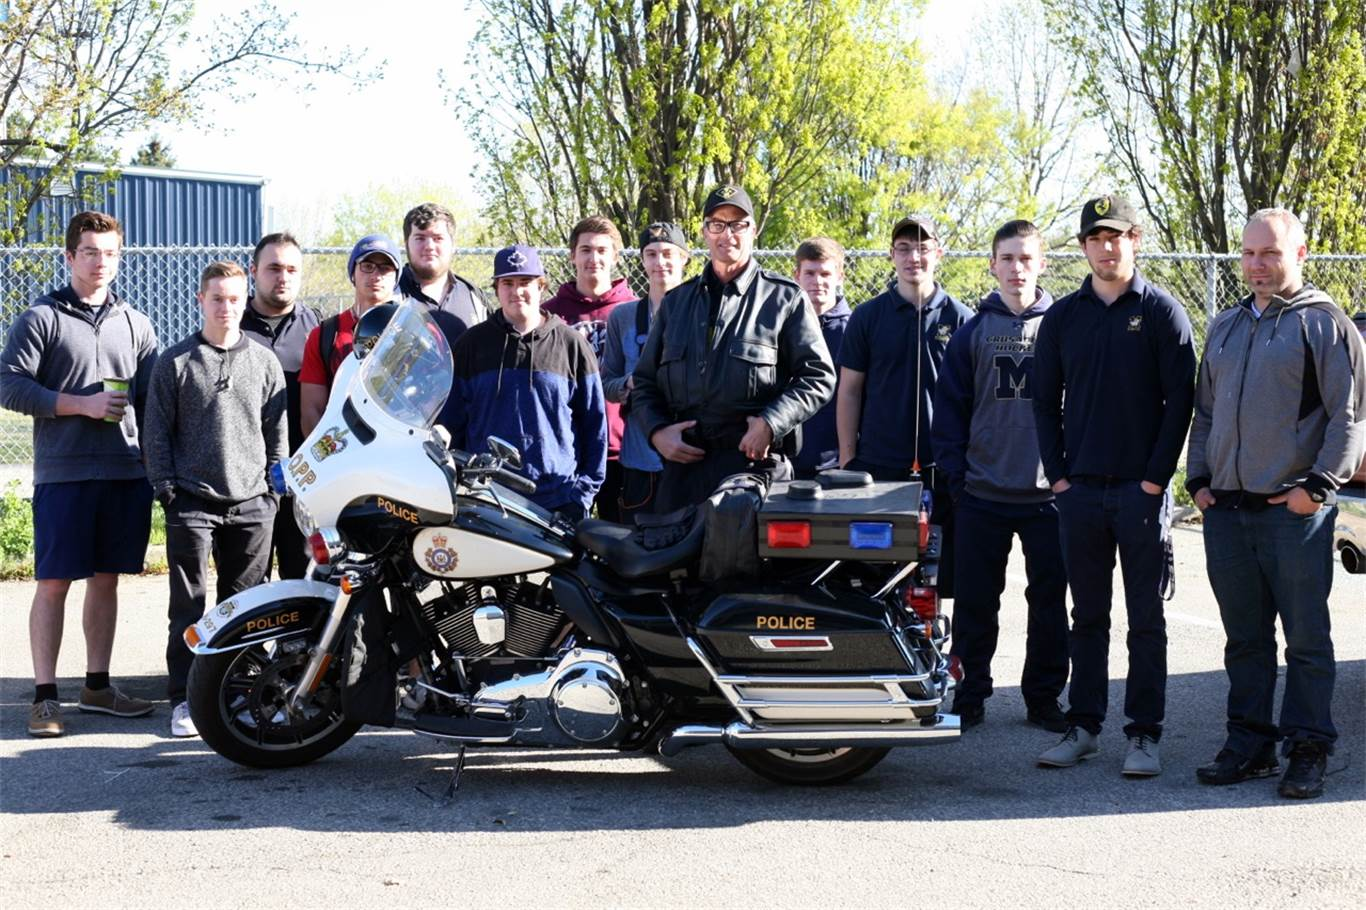 SHSM Transportation Motorcycle presentation with OPP Constable Gord Nederveen. Photo by Nancy Castura.